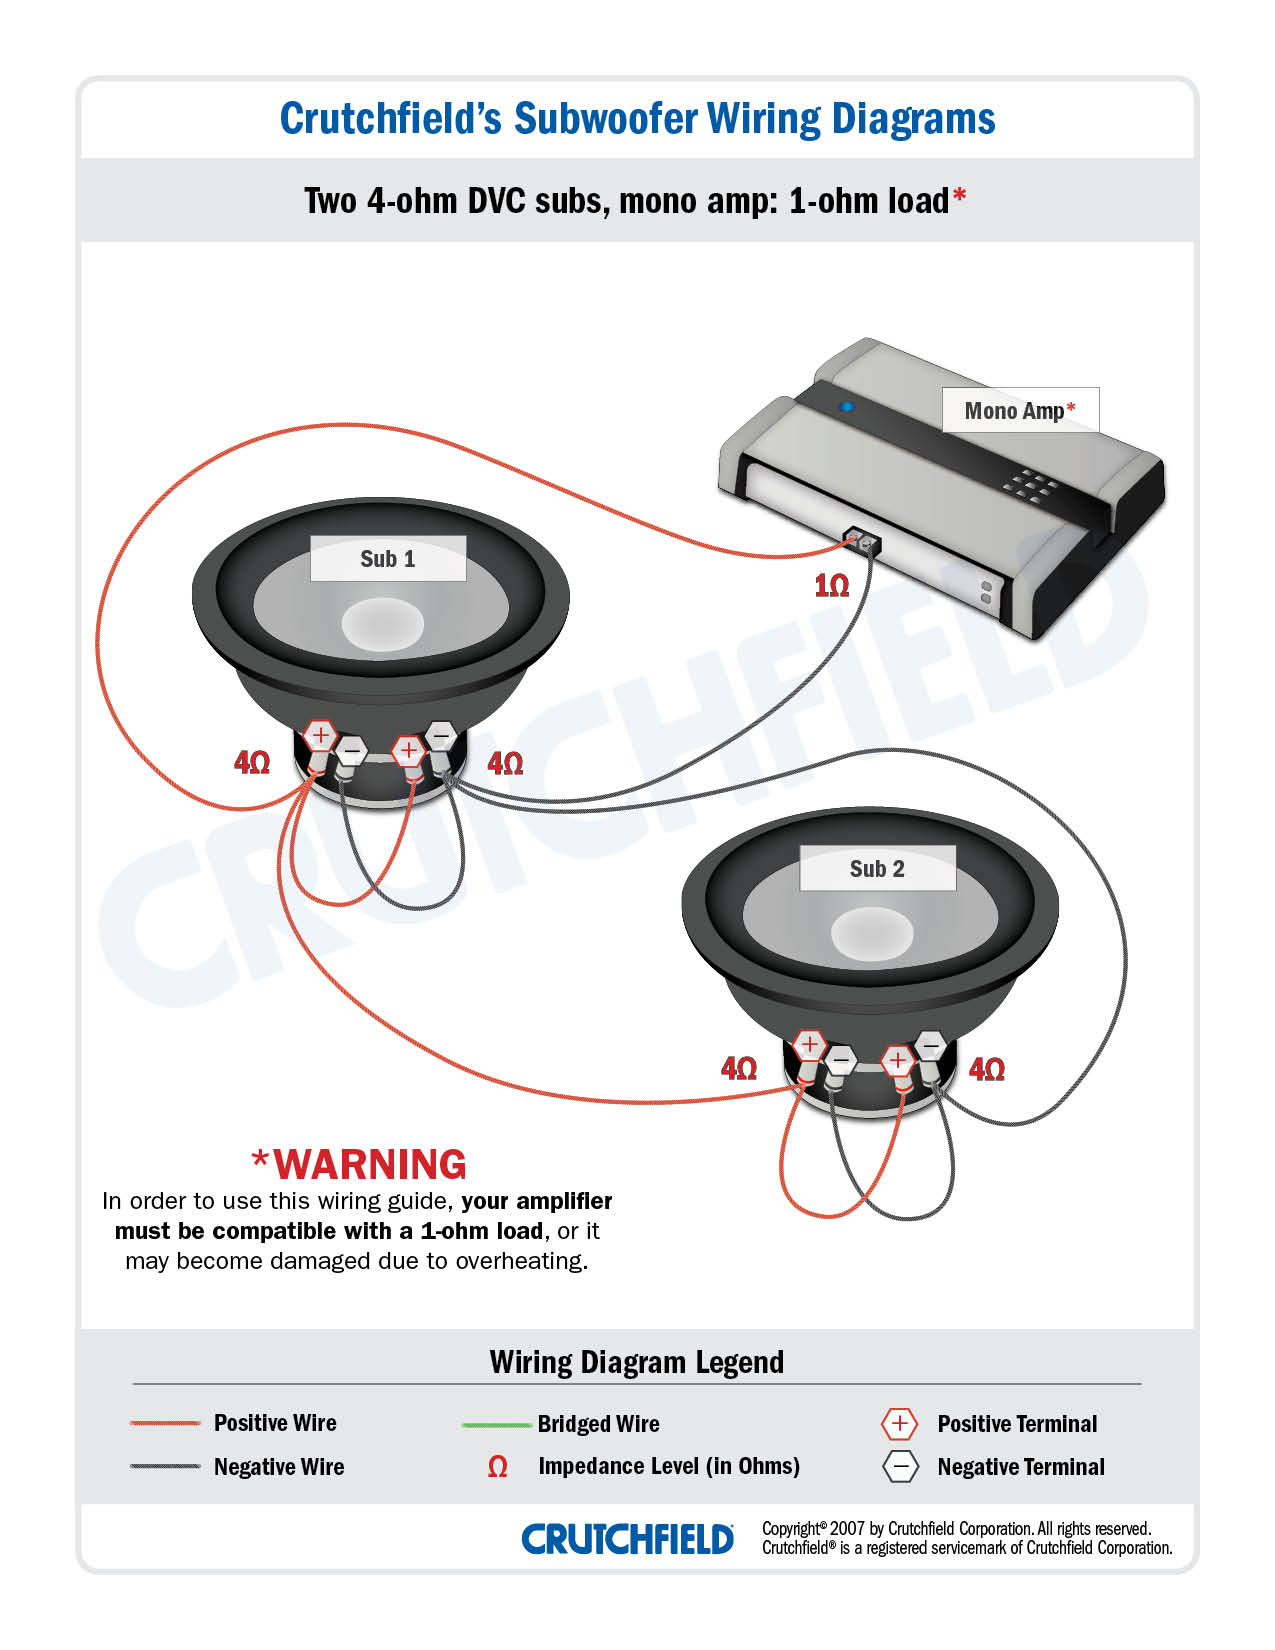 rockford fosgate p2d4 10 punch p2 10 subwoofer dual 4 ohm the wiring diagram for this can be found here pix crutchfield com ca learningcenter car subwoofer wiring 2 dvc 4 ohm mono low imp jpg